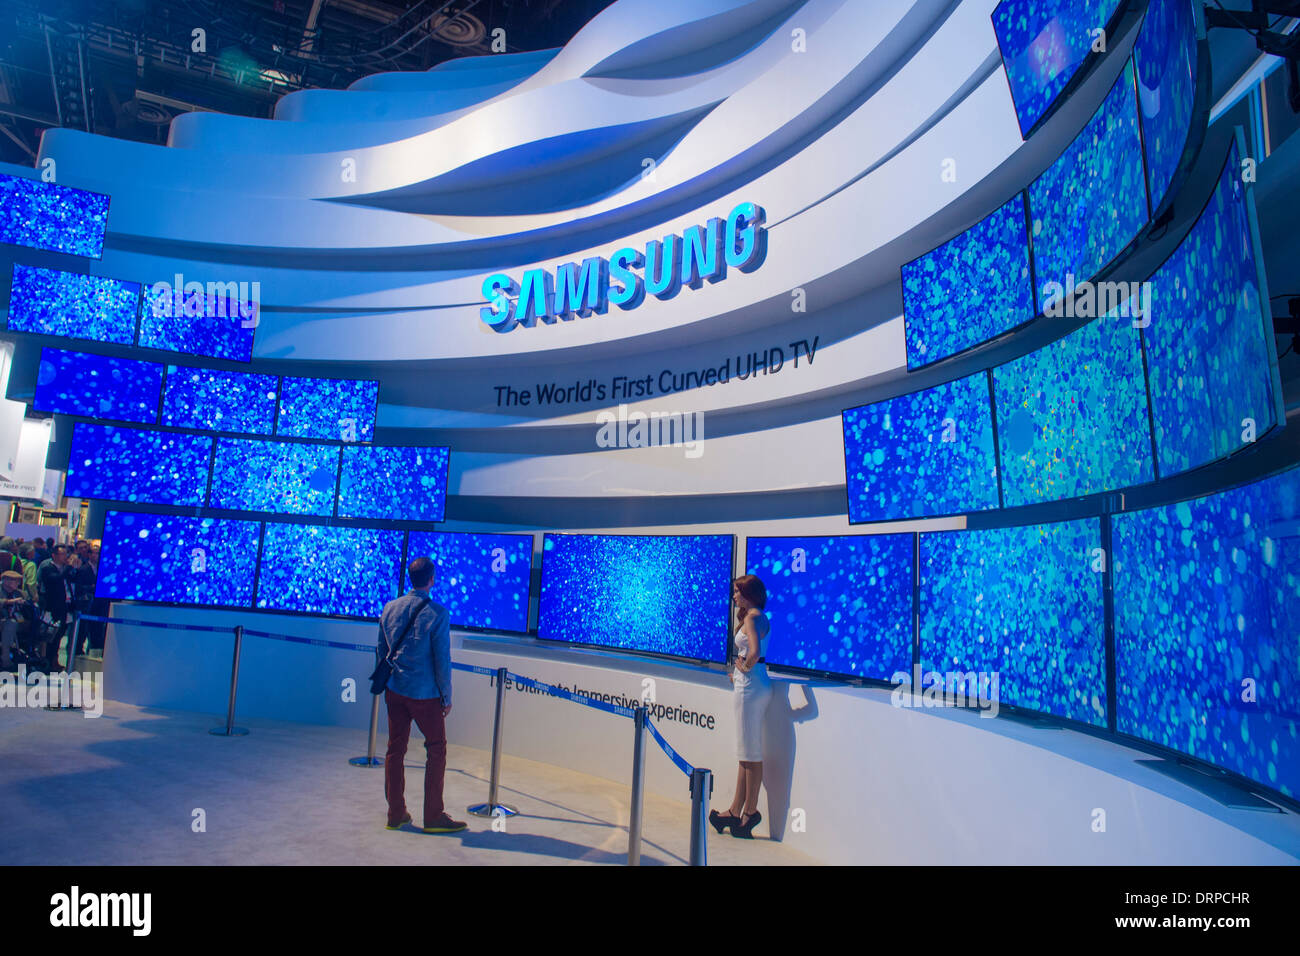 the samsung booth at the ces show in las vegas stock photo royalty free image 66261043 alamy. Black Bedroom Furniture Sets. Home Design Ideas